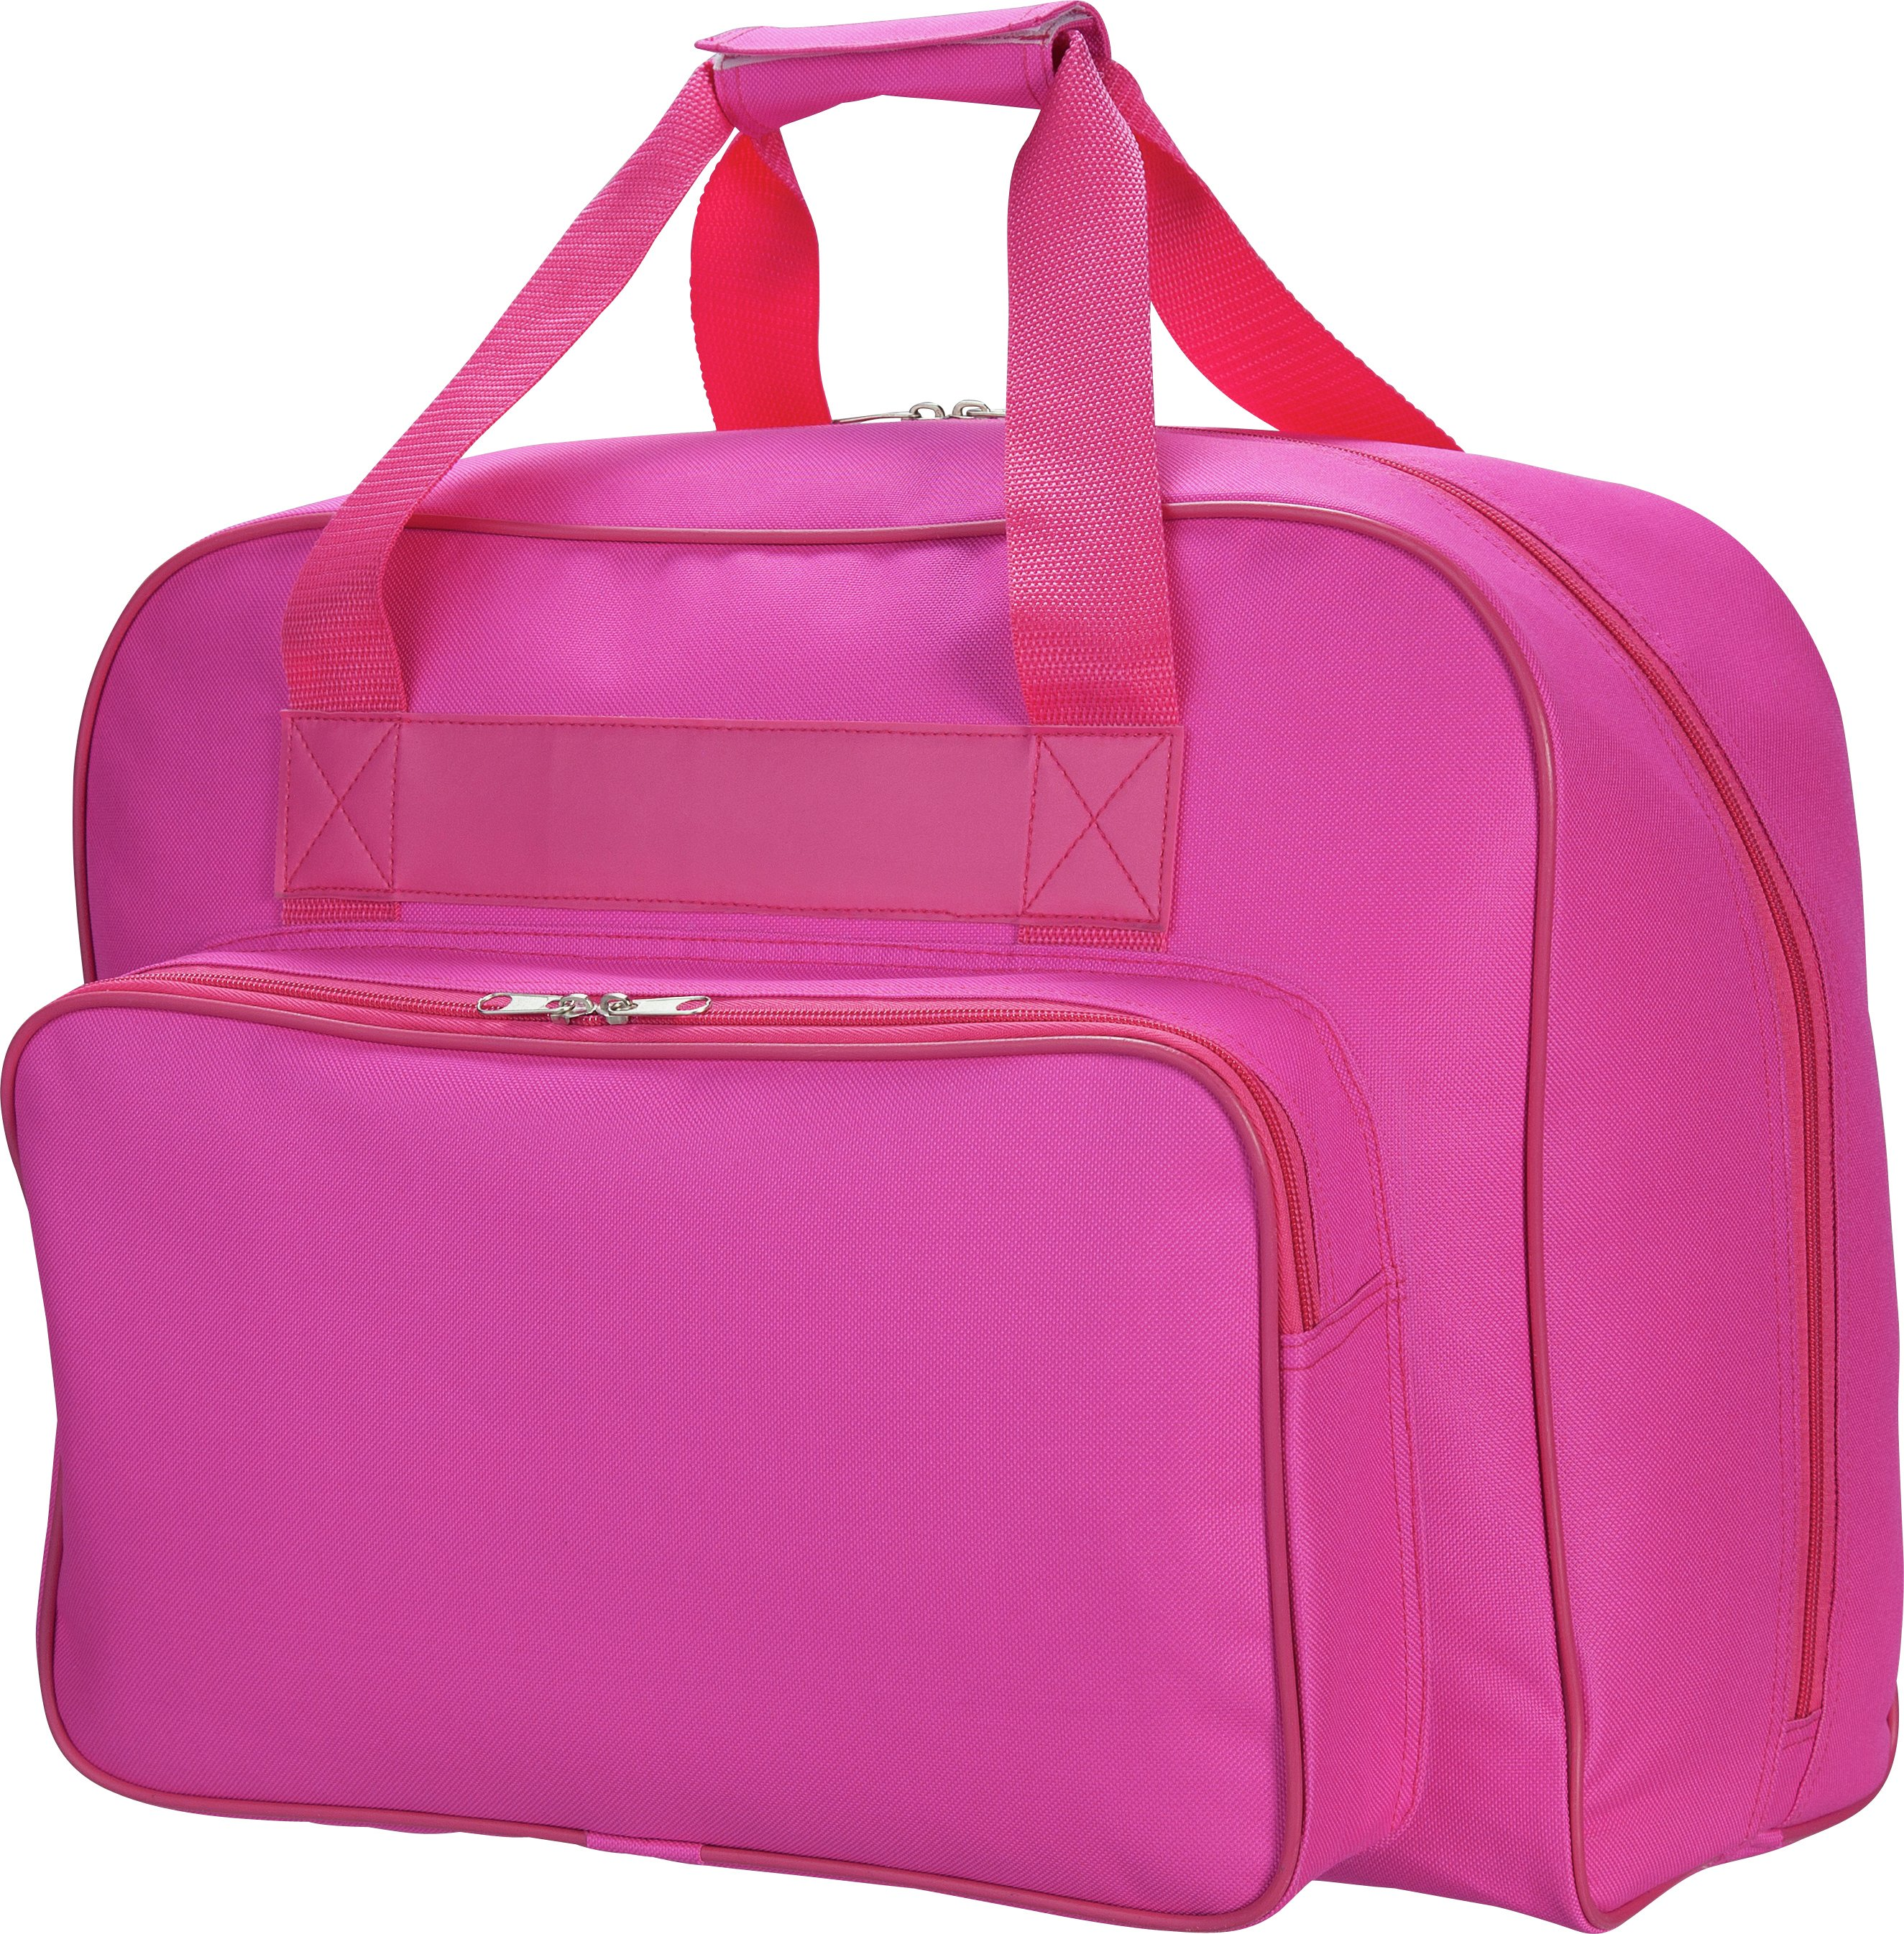 Argos - Heavy Duty Polyester Sewing Machine Carry Bag - Pink